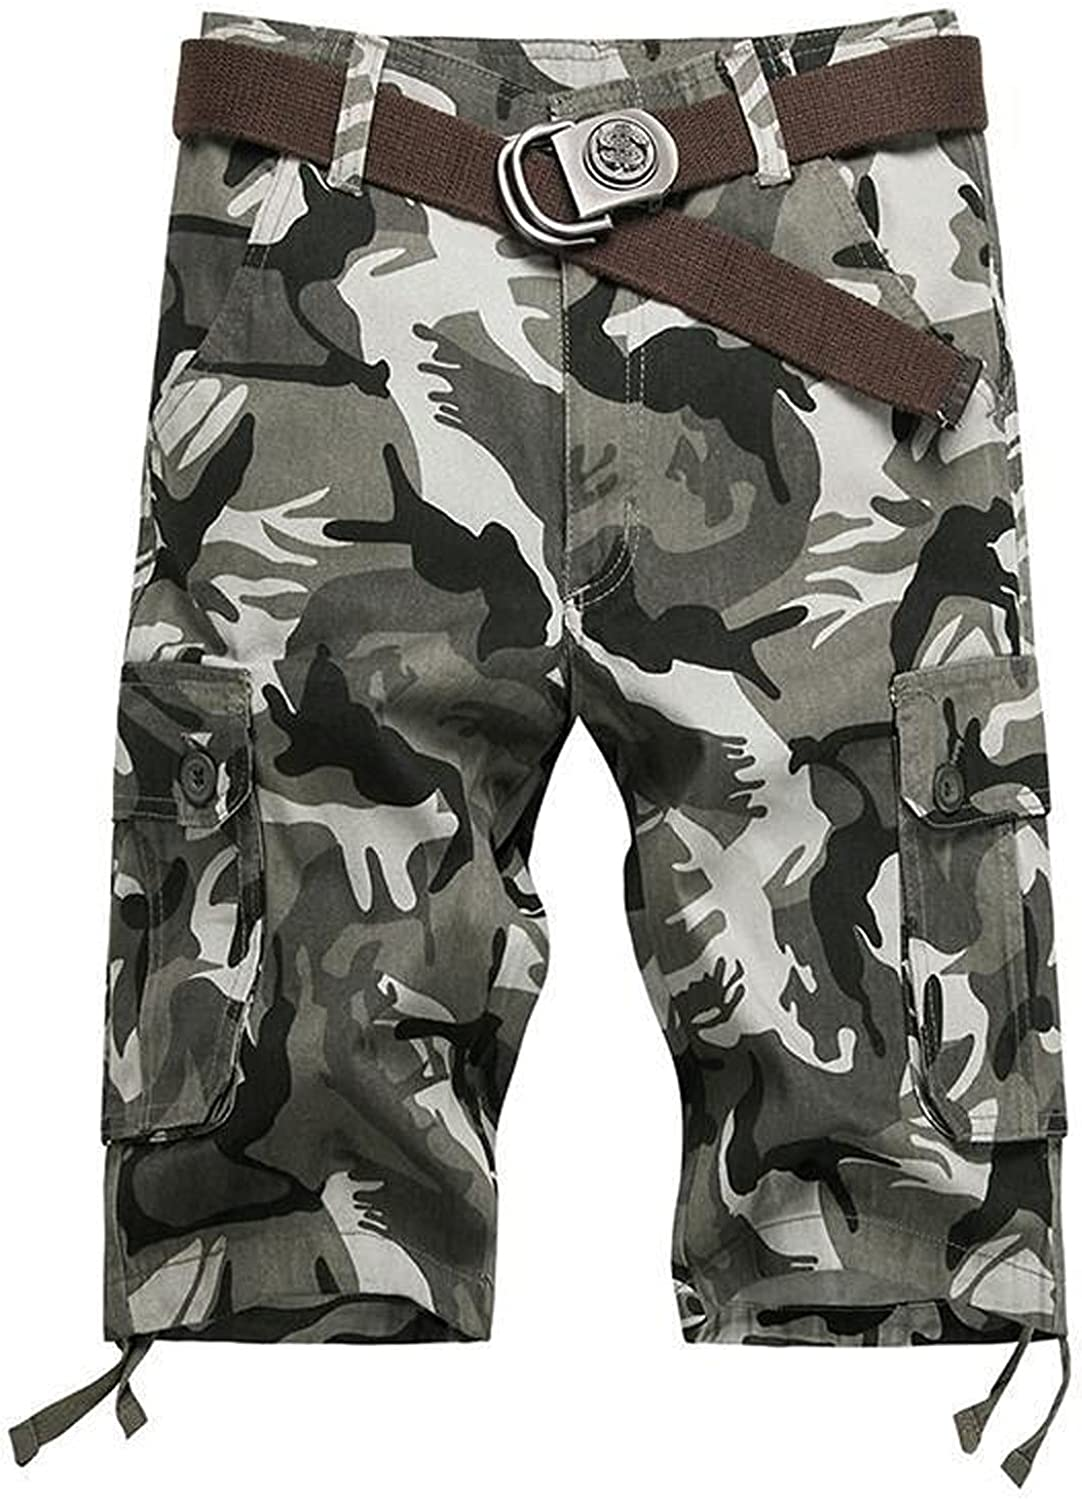 ZCAITIANYA Men's Outdoor Cargo Shorts Casual Camouflage Workout Hiking Relaxed Fit Stretch Summer Wear with Zipper Pockets